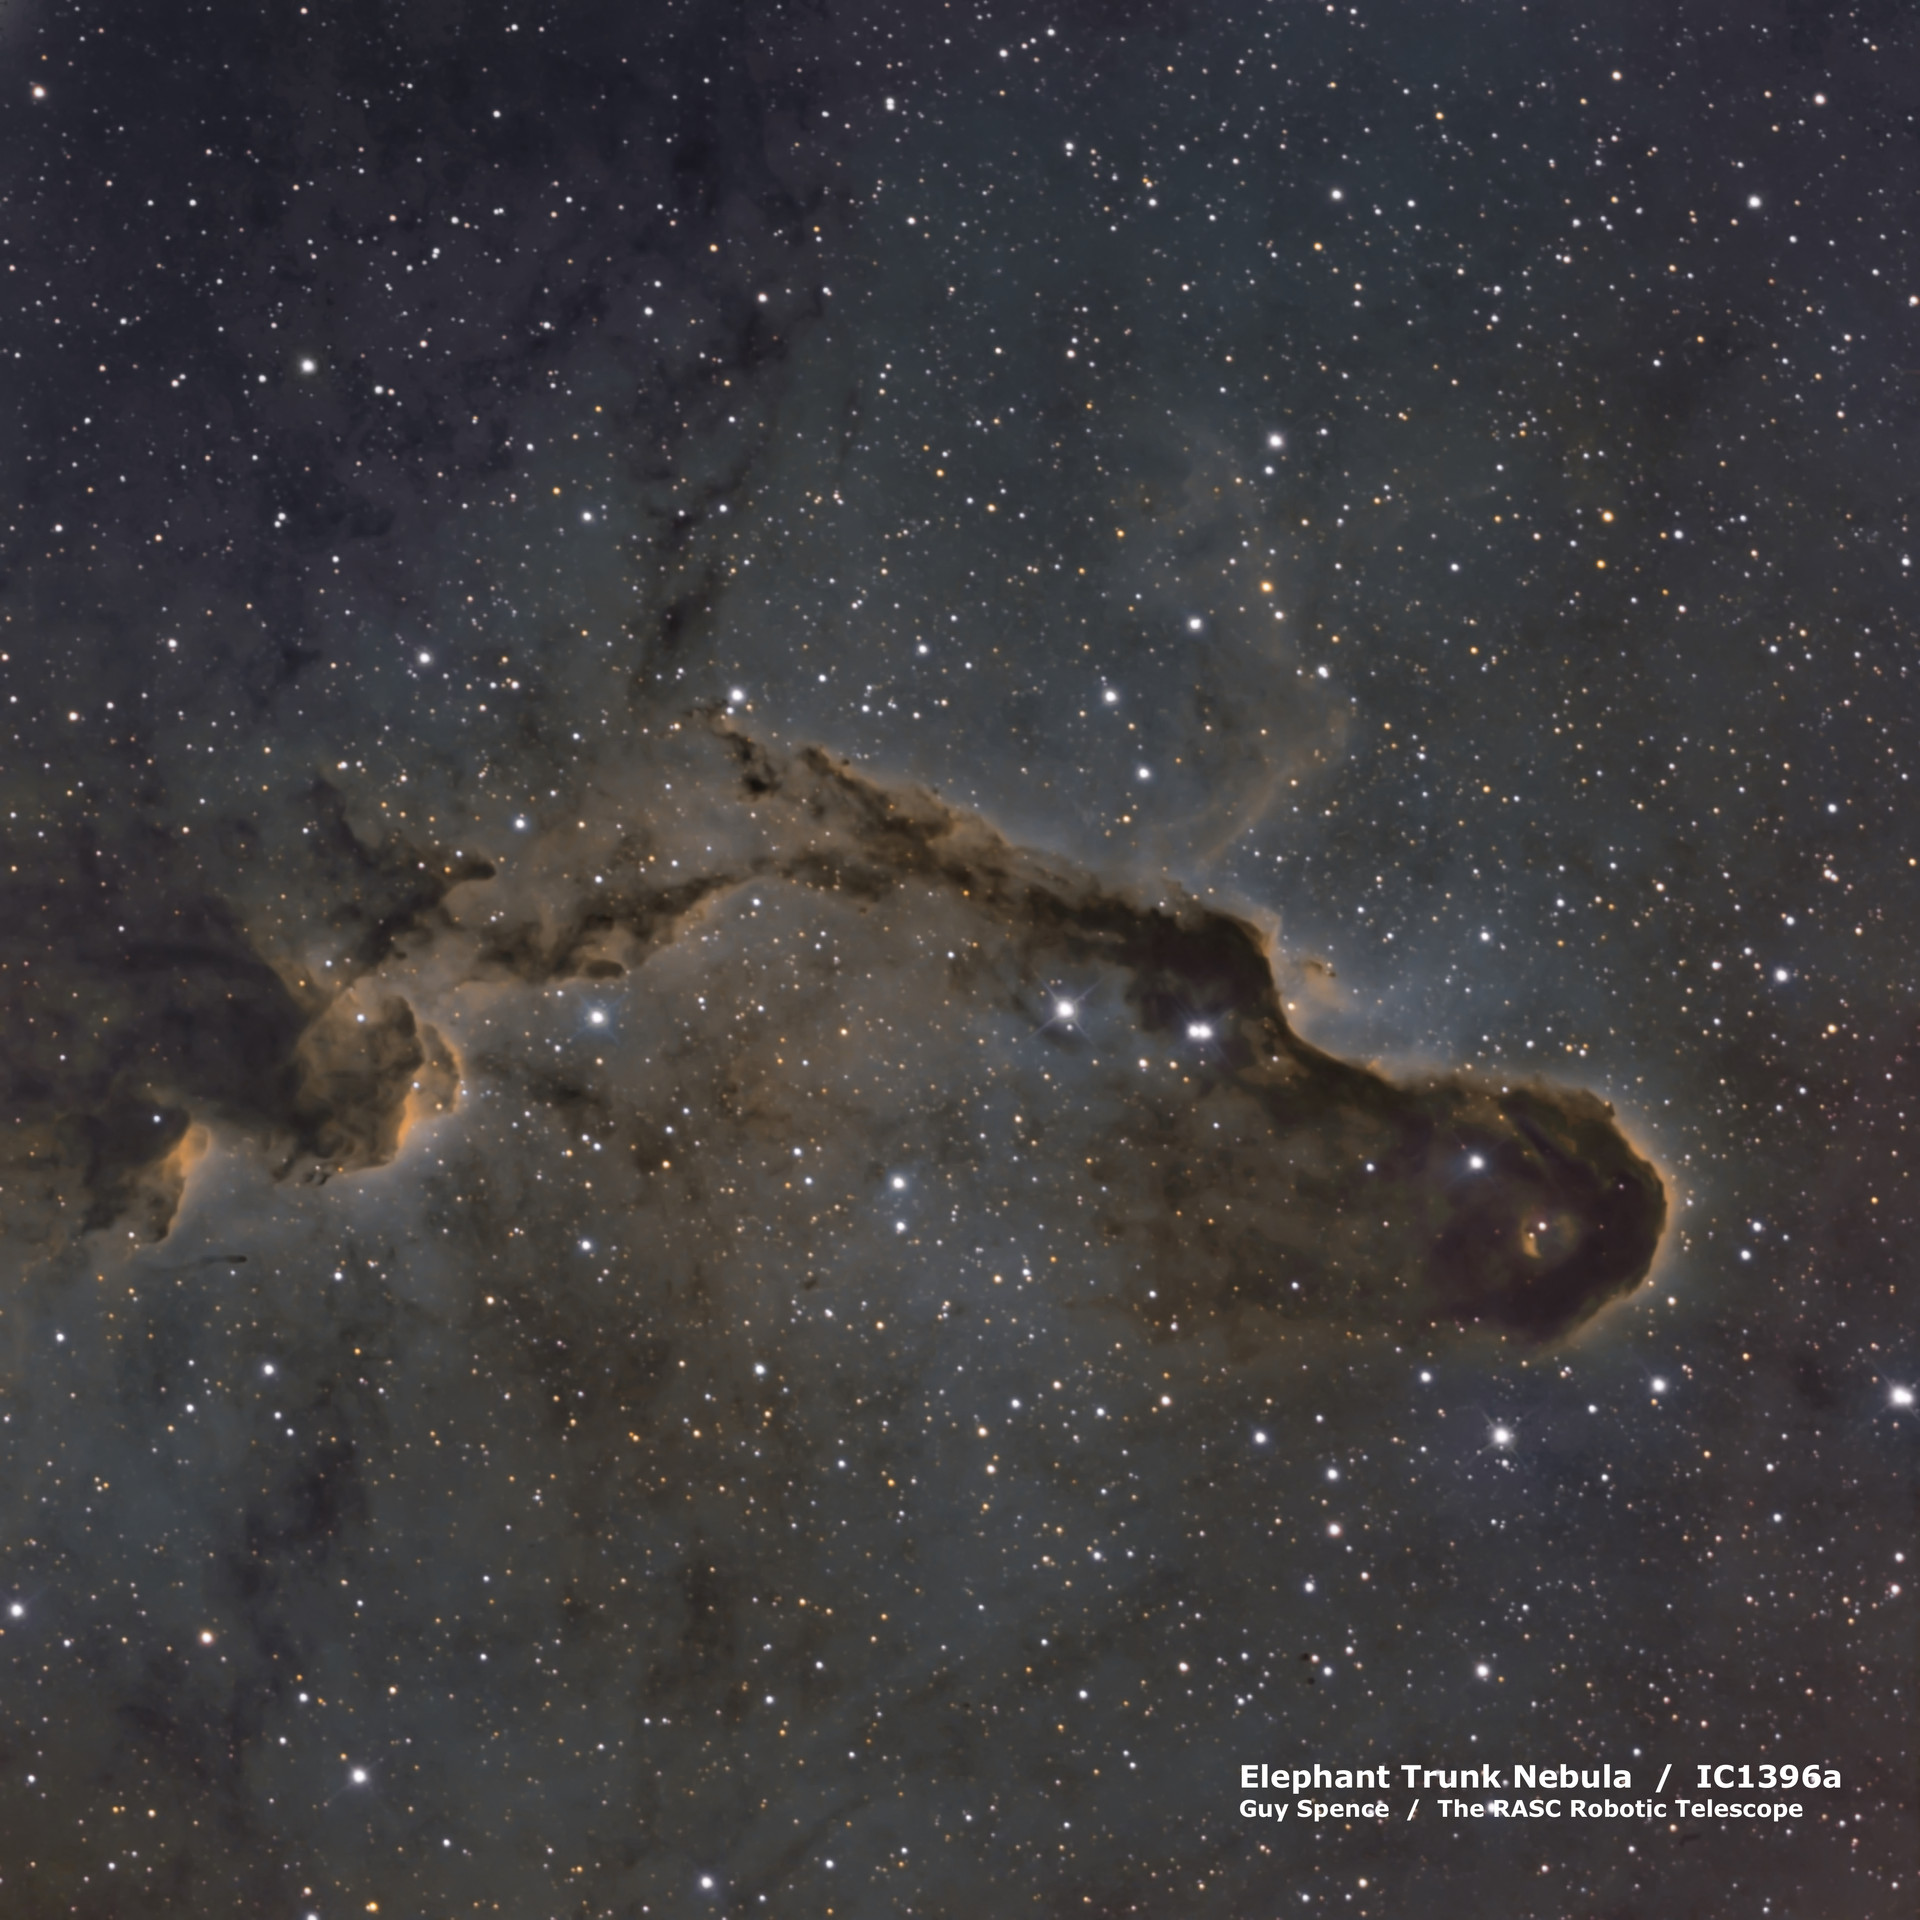 Elephant Trunk Nebula - IC1396a